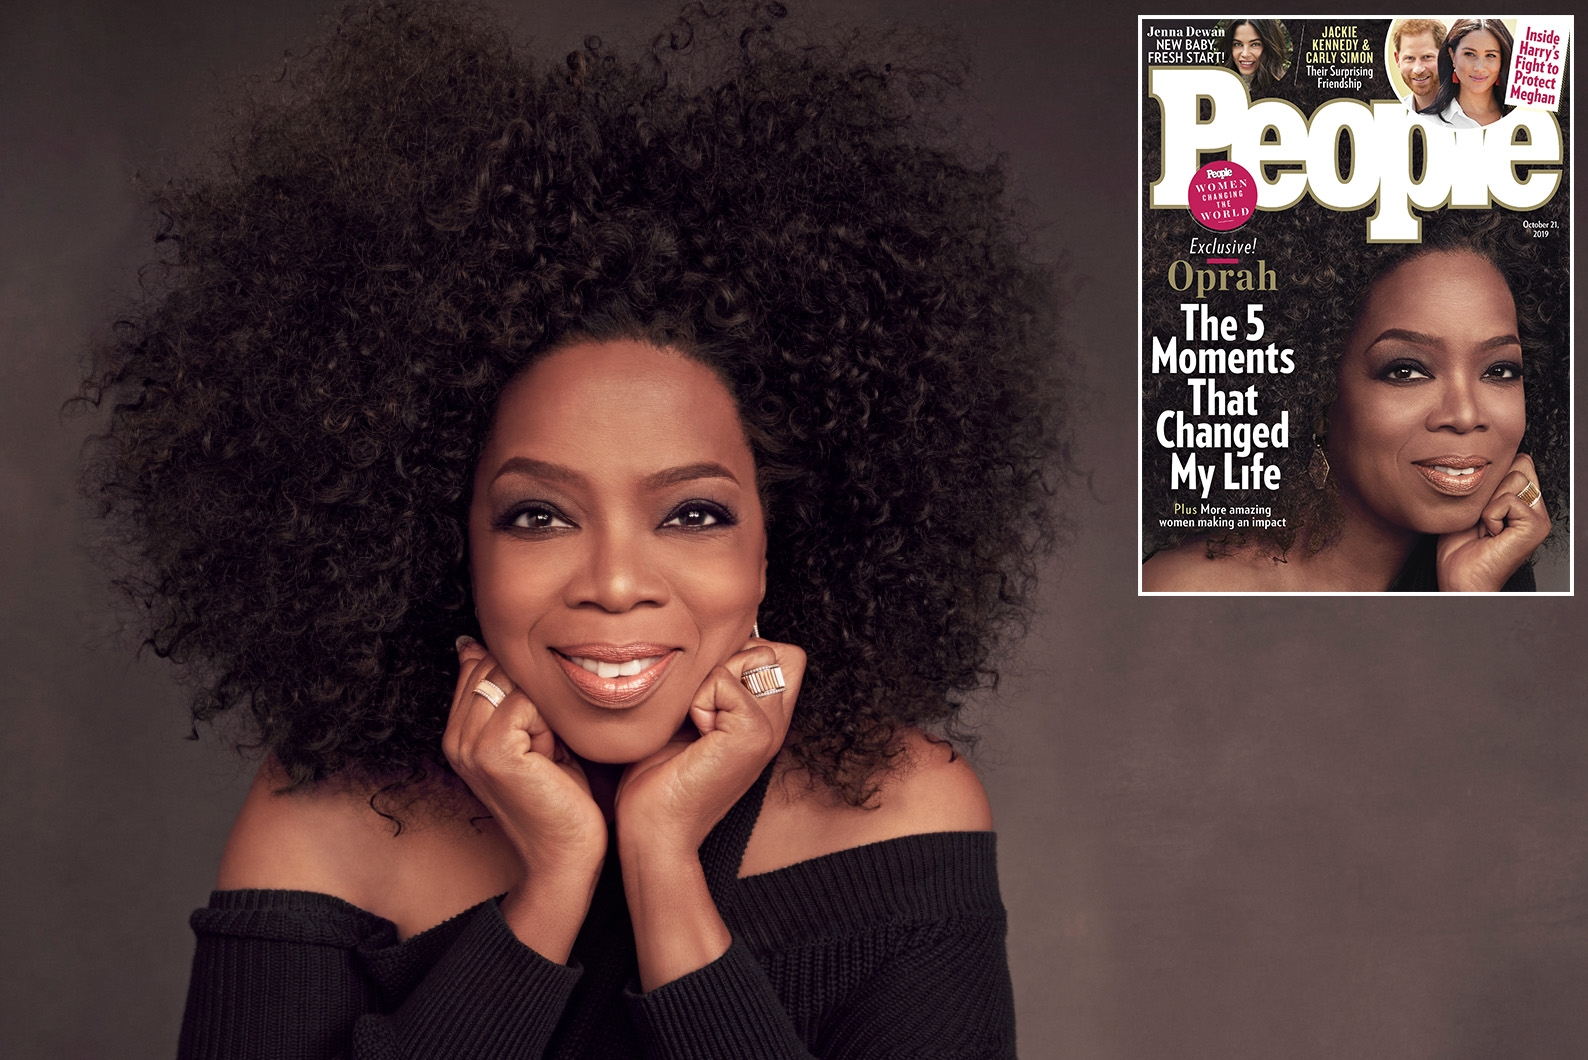 Oprah Winfrey on Five Moments That Changed Her Life